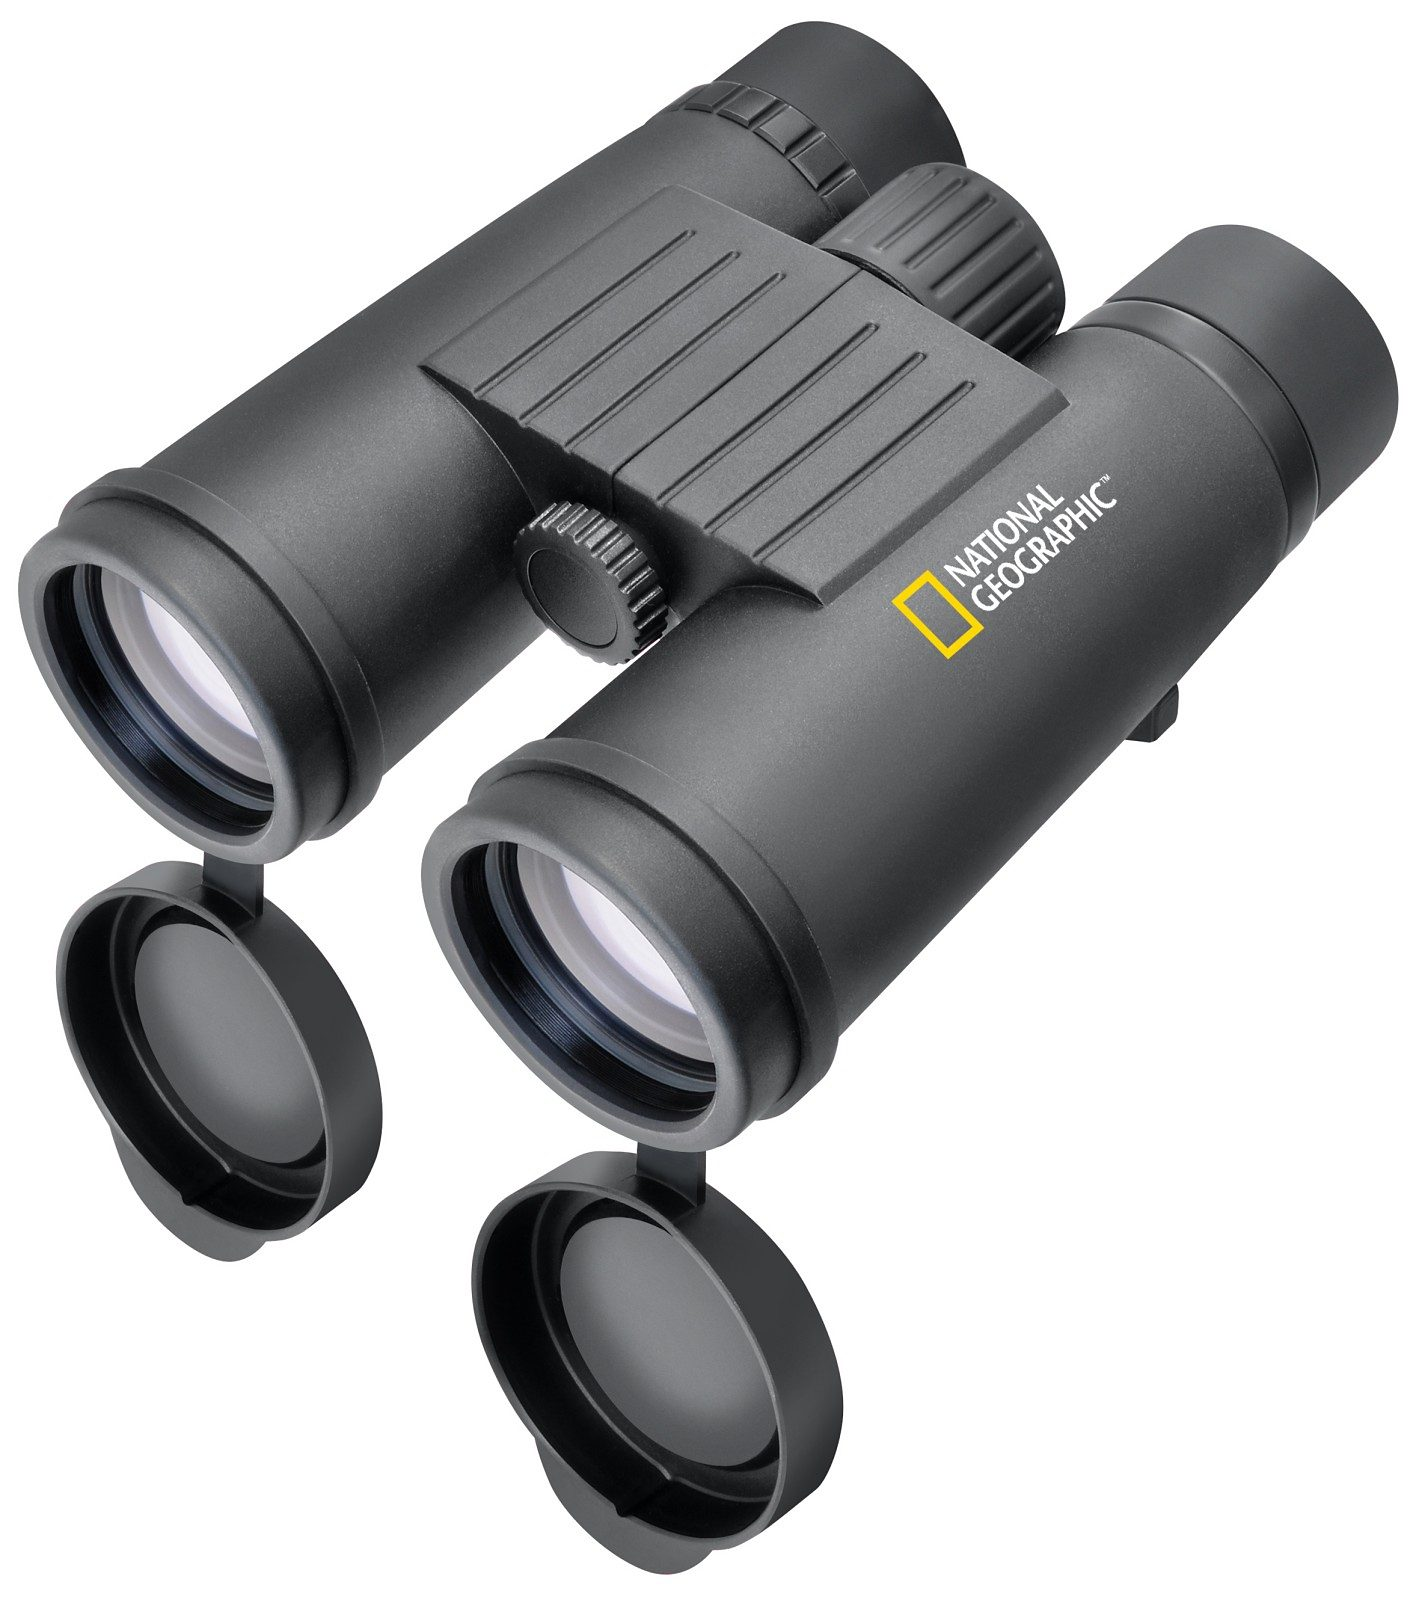 Bresser Fernglas »NATIONAL GEOGRAPHIC 8x42 WP Fernglas«